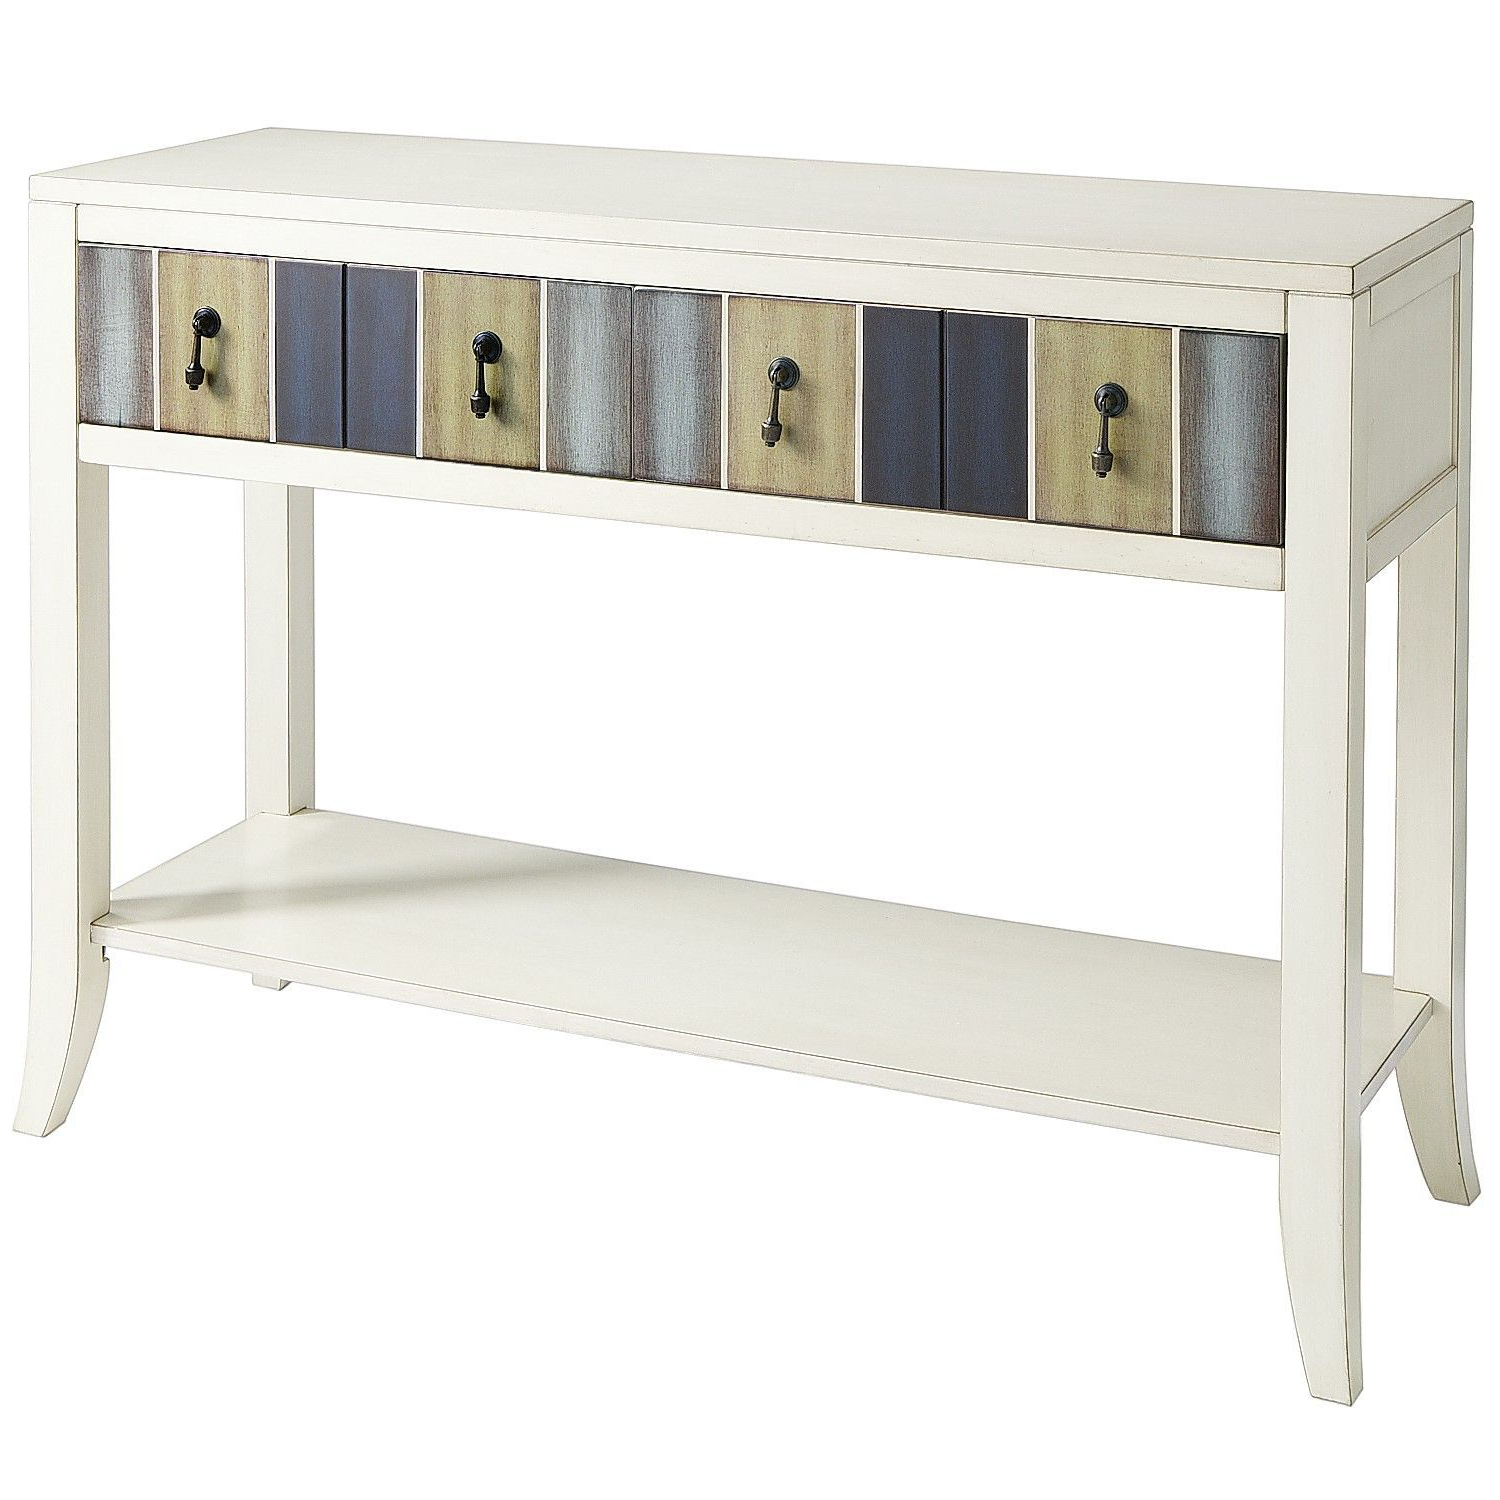 Truett Console Table | Console Tables | Pinterest | Console Tables With Regard To Parsons Grey Solid Surface Top & Dark Steel Base 48X16 Console Tables (View 20 of 20)